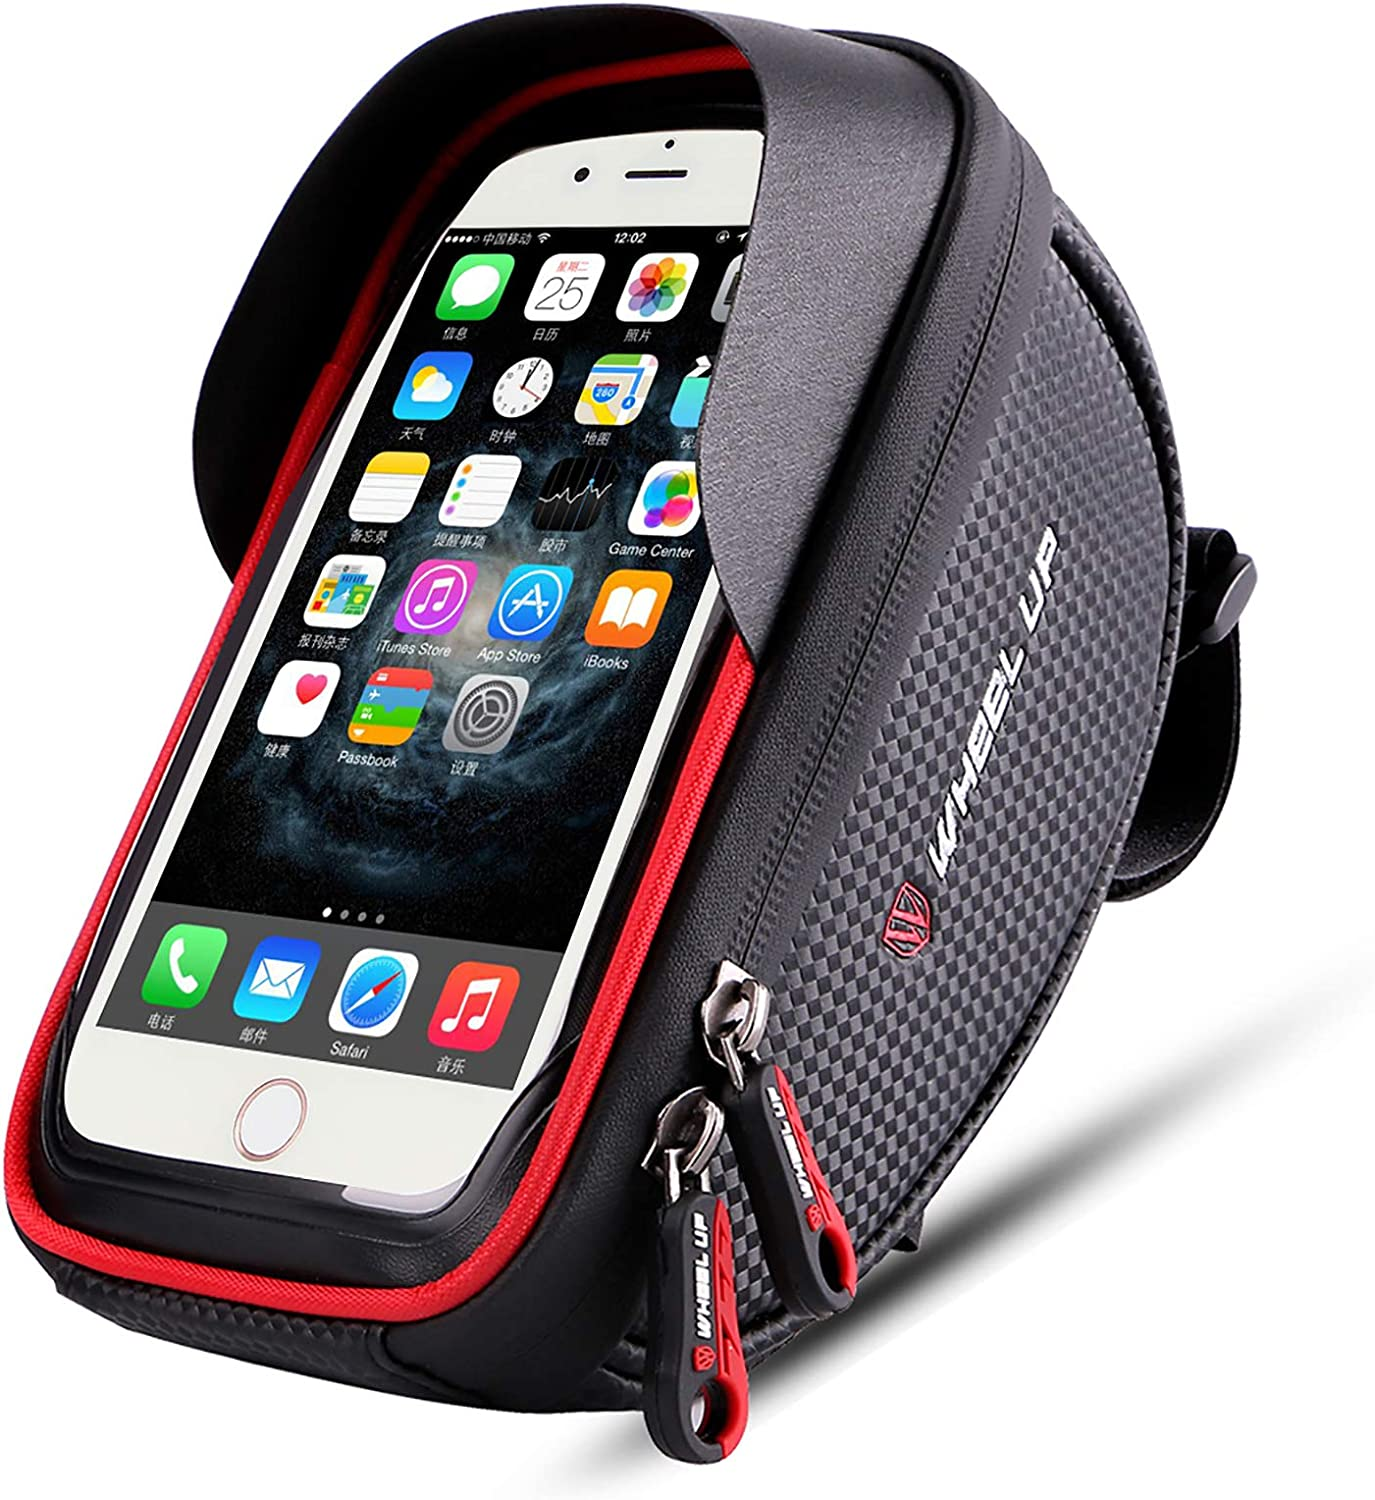 Waterproof Bicycle Bike Bags Mount Phone Holder Cases Bag Pouch Cover for Mobile